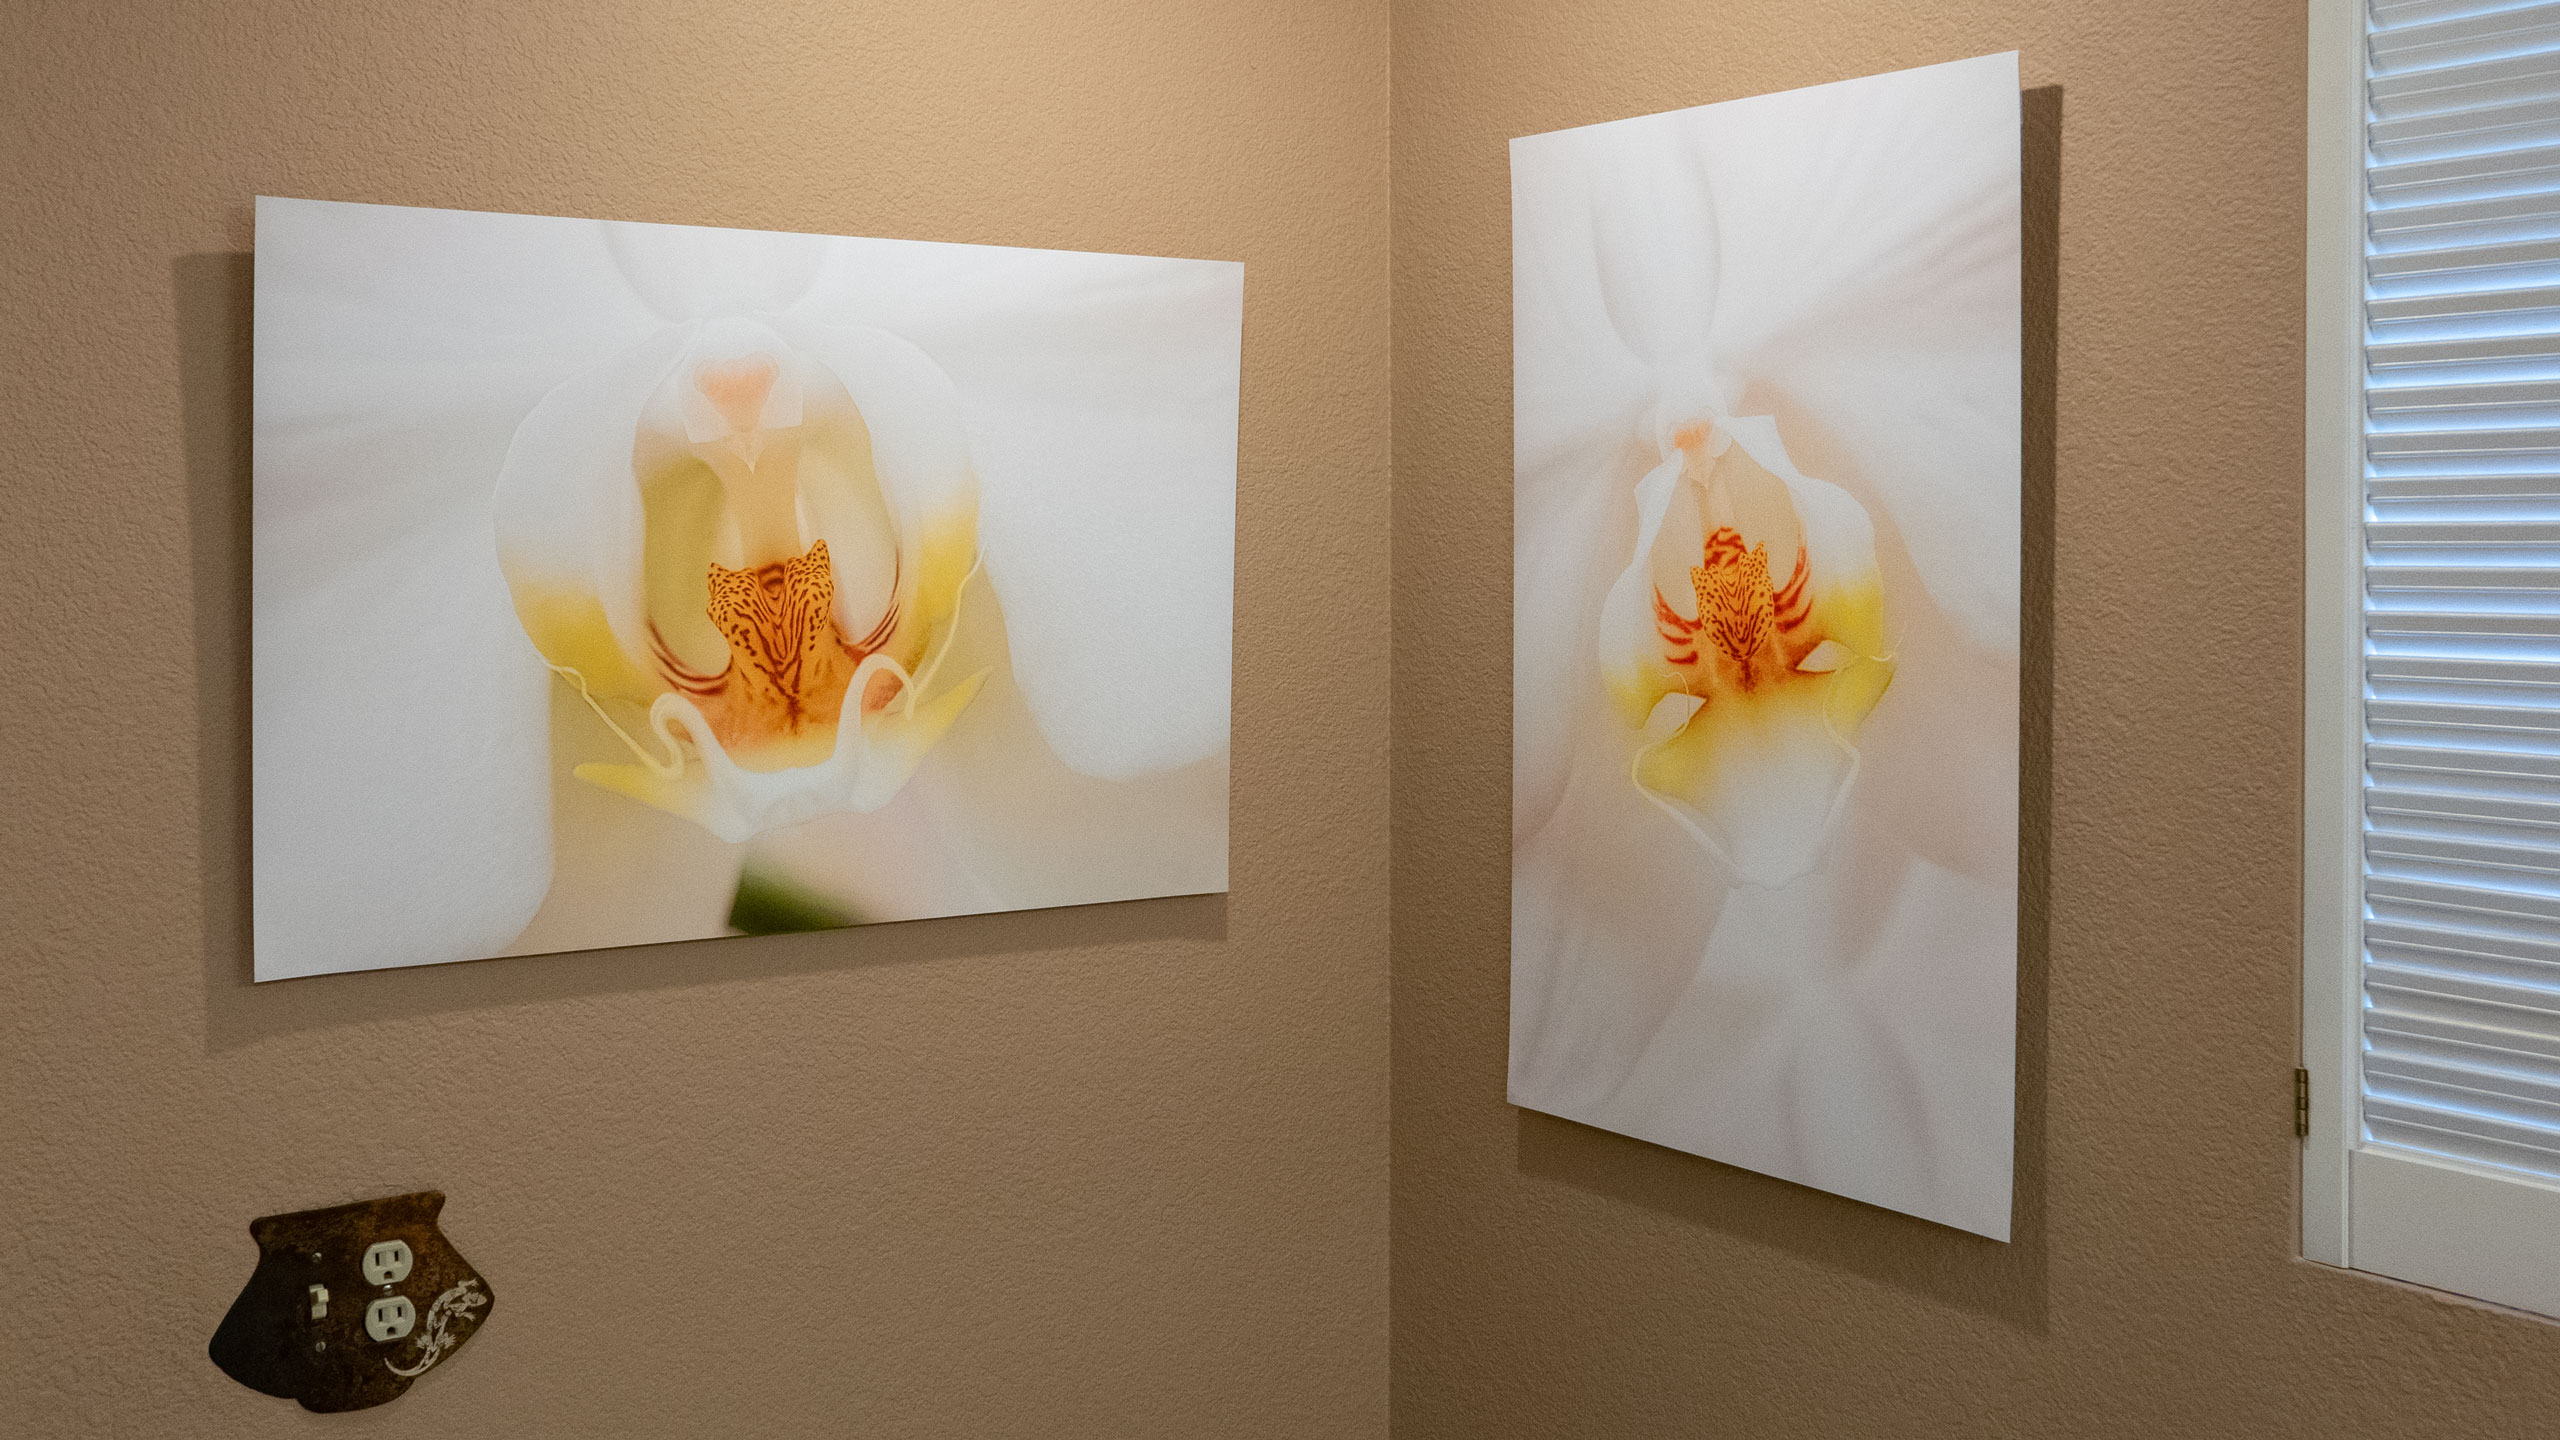 The Xpozer 4Pack: Changeable art for your walls